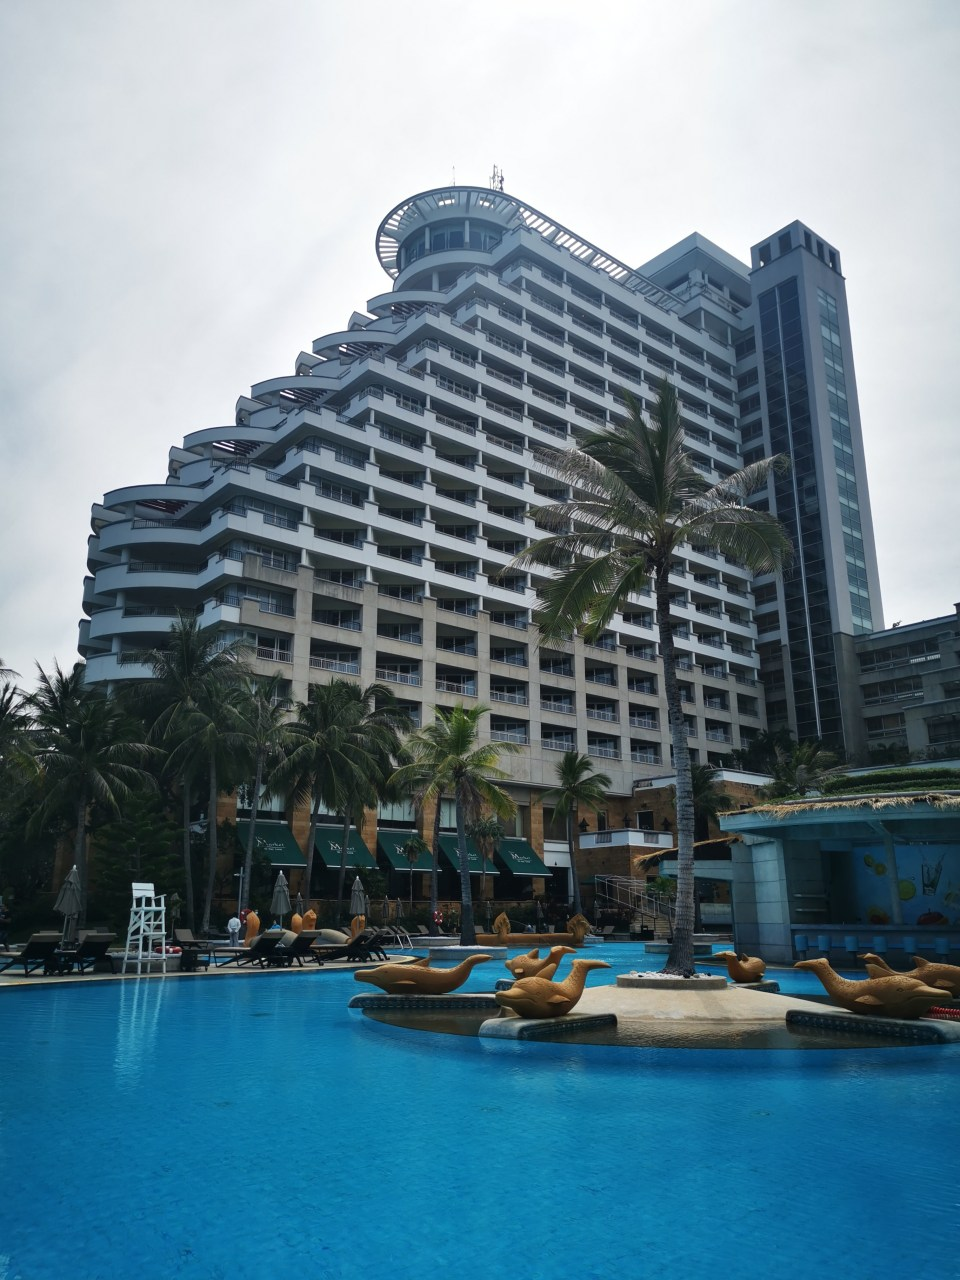 Pool and building view of Hilton